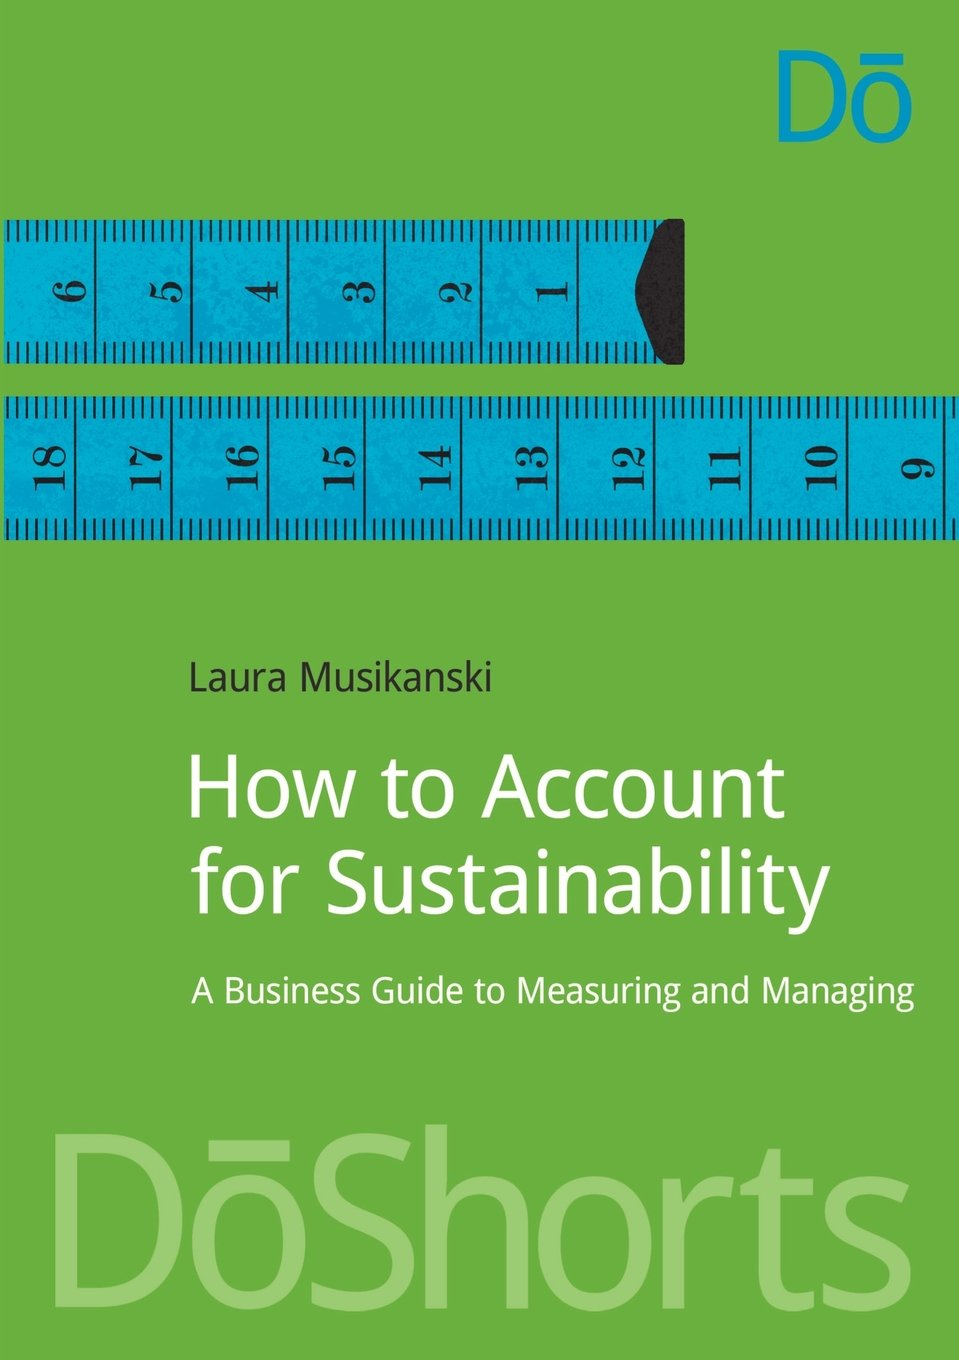 How to Account for Sustainability (Laura Musikanski)